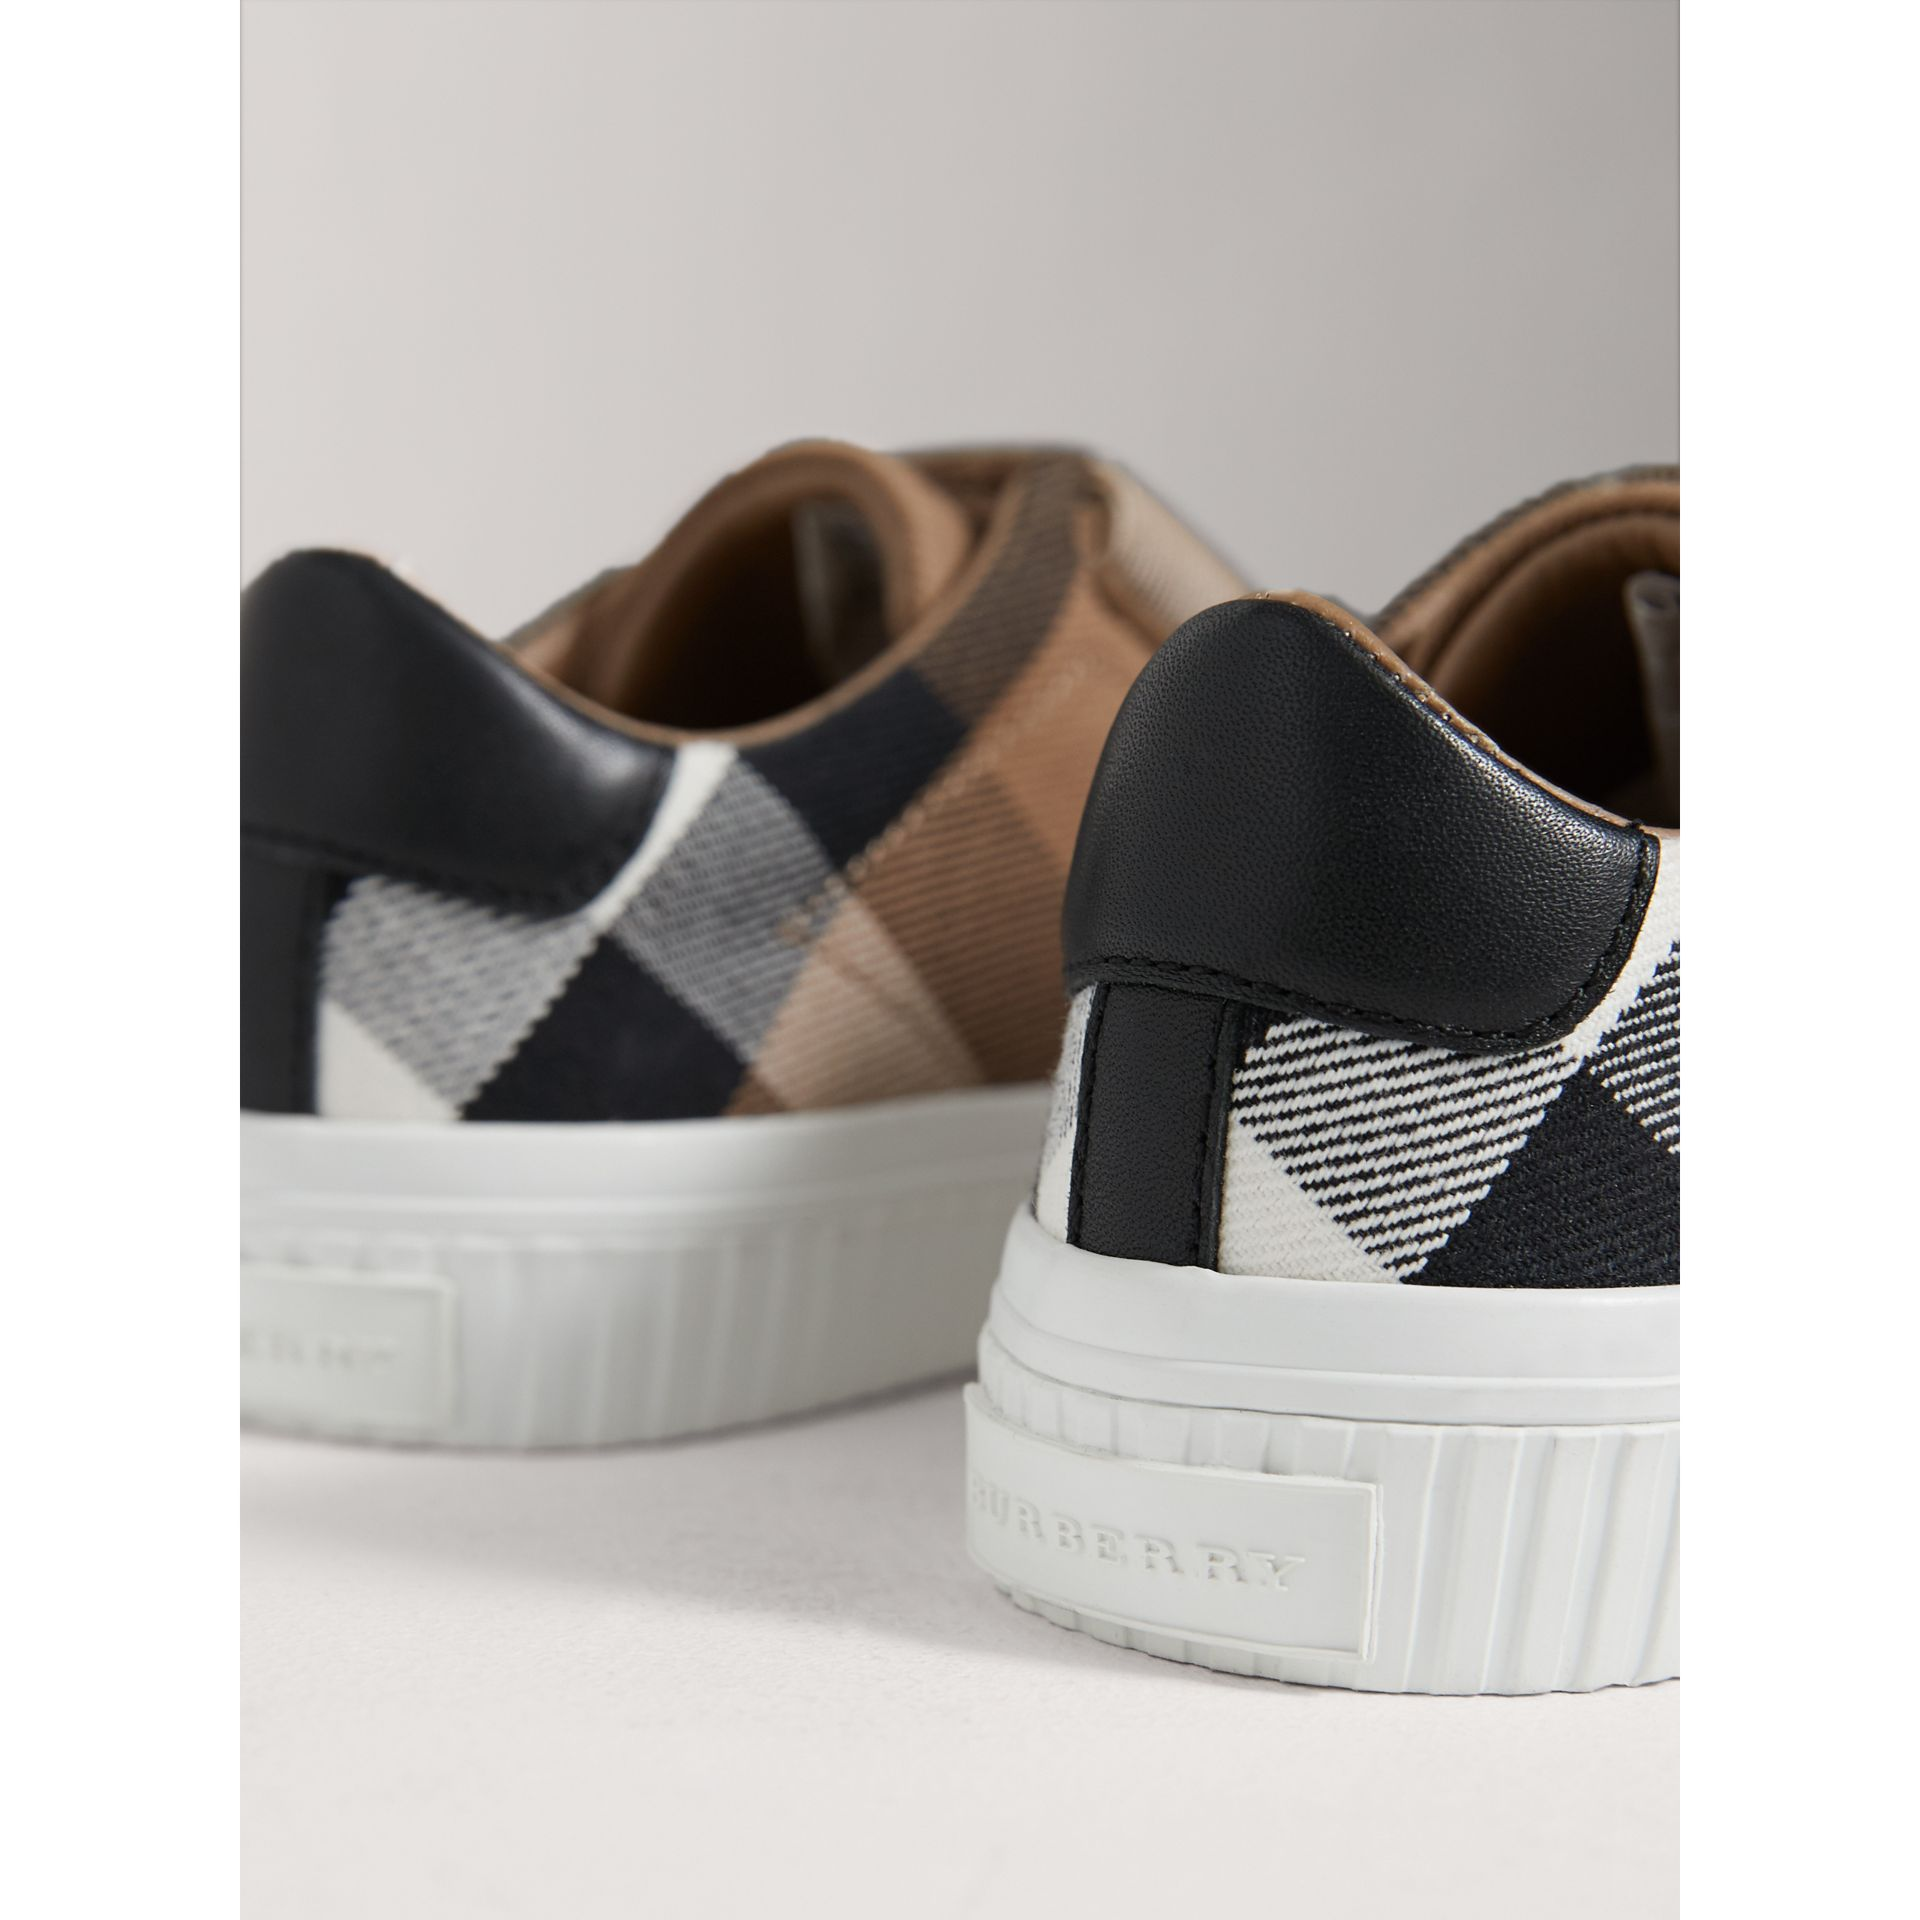 House Check and Leather Trainers in Classic/optic White | Burberry United Kingdom - gallery image 3